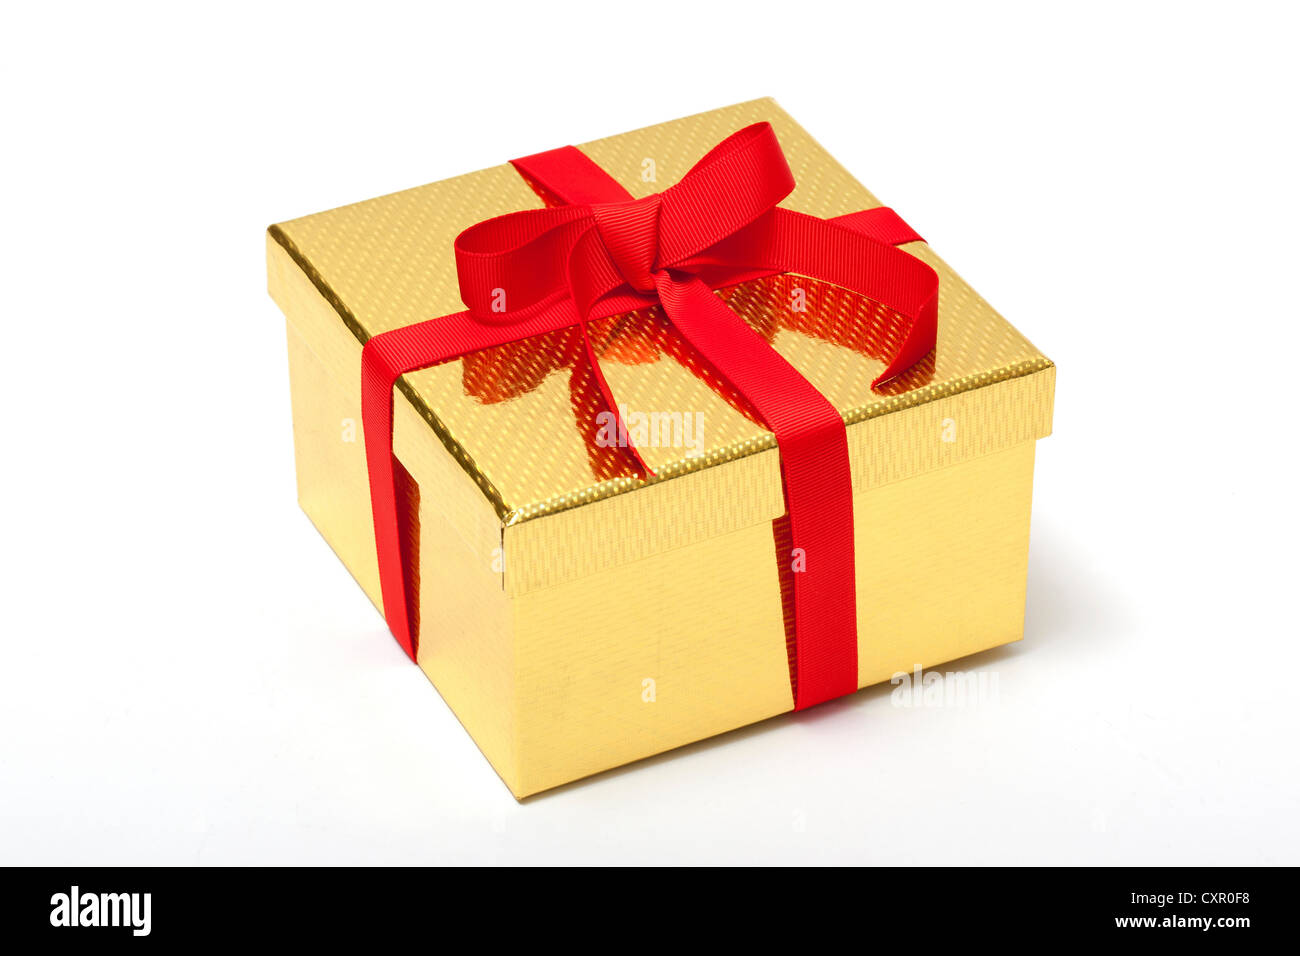 Golden gift box with red ribbon - Stock Image